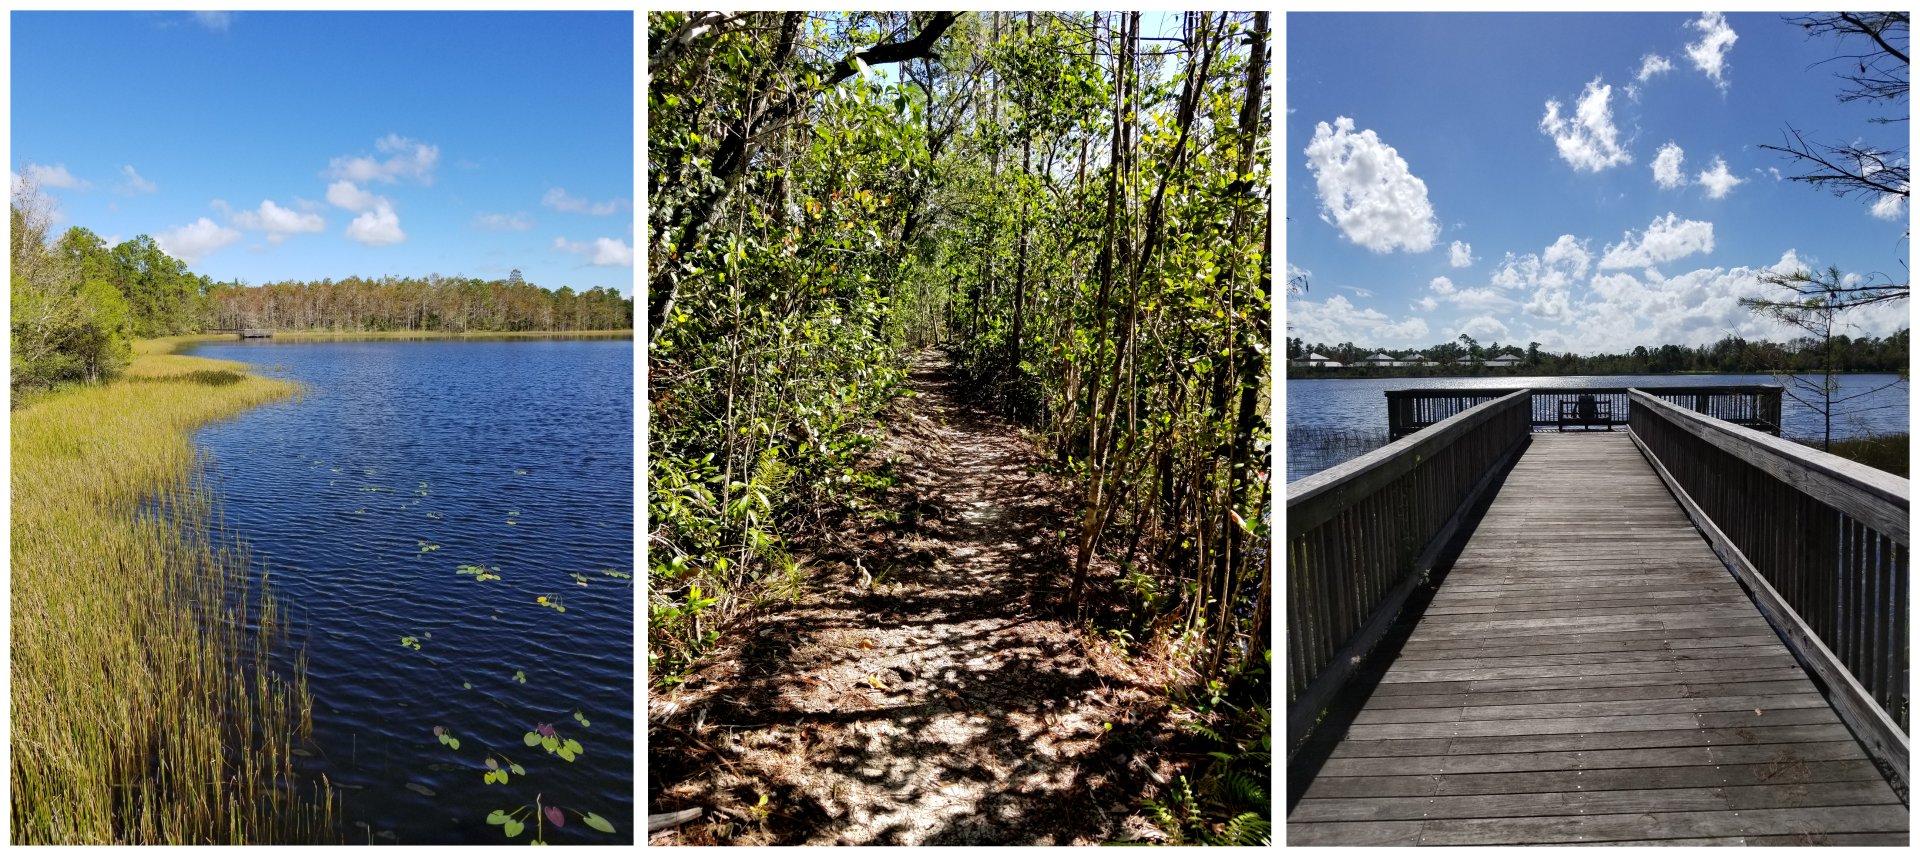 Three images in a row, the first is of the shoreline of Gator Lake, the middle is of the dirt surface of Eagle Trail, and the right is of the fishing dock